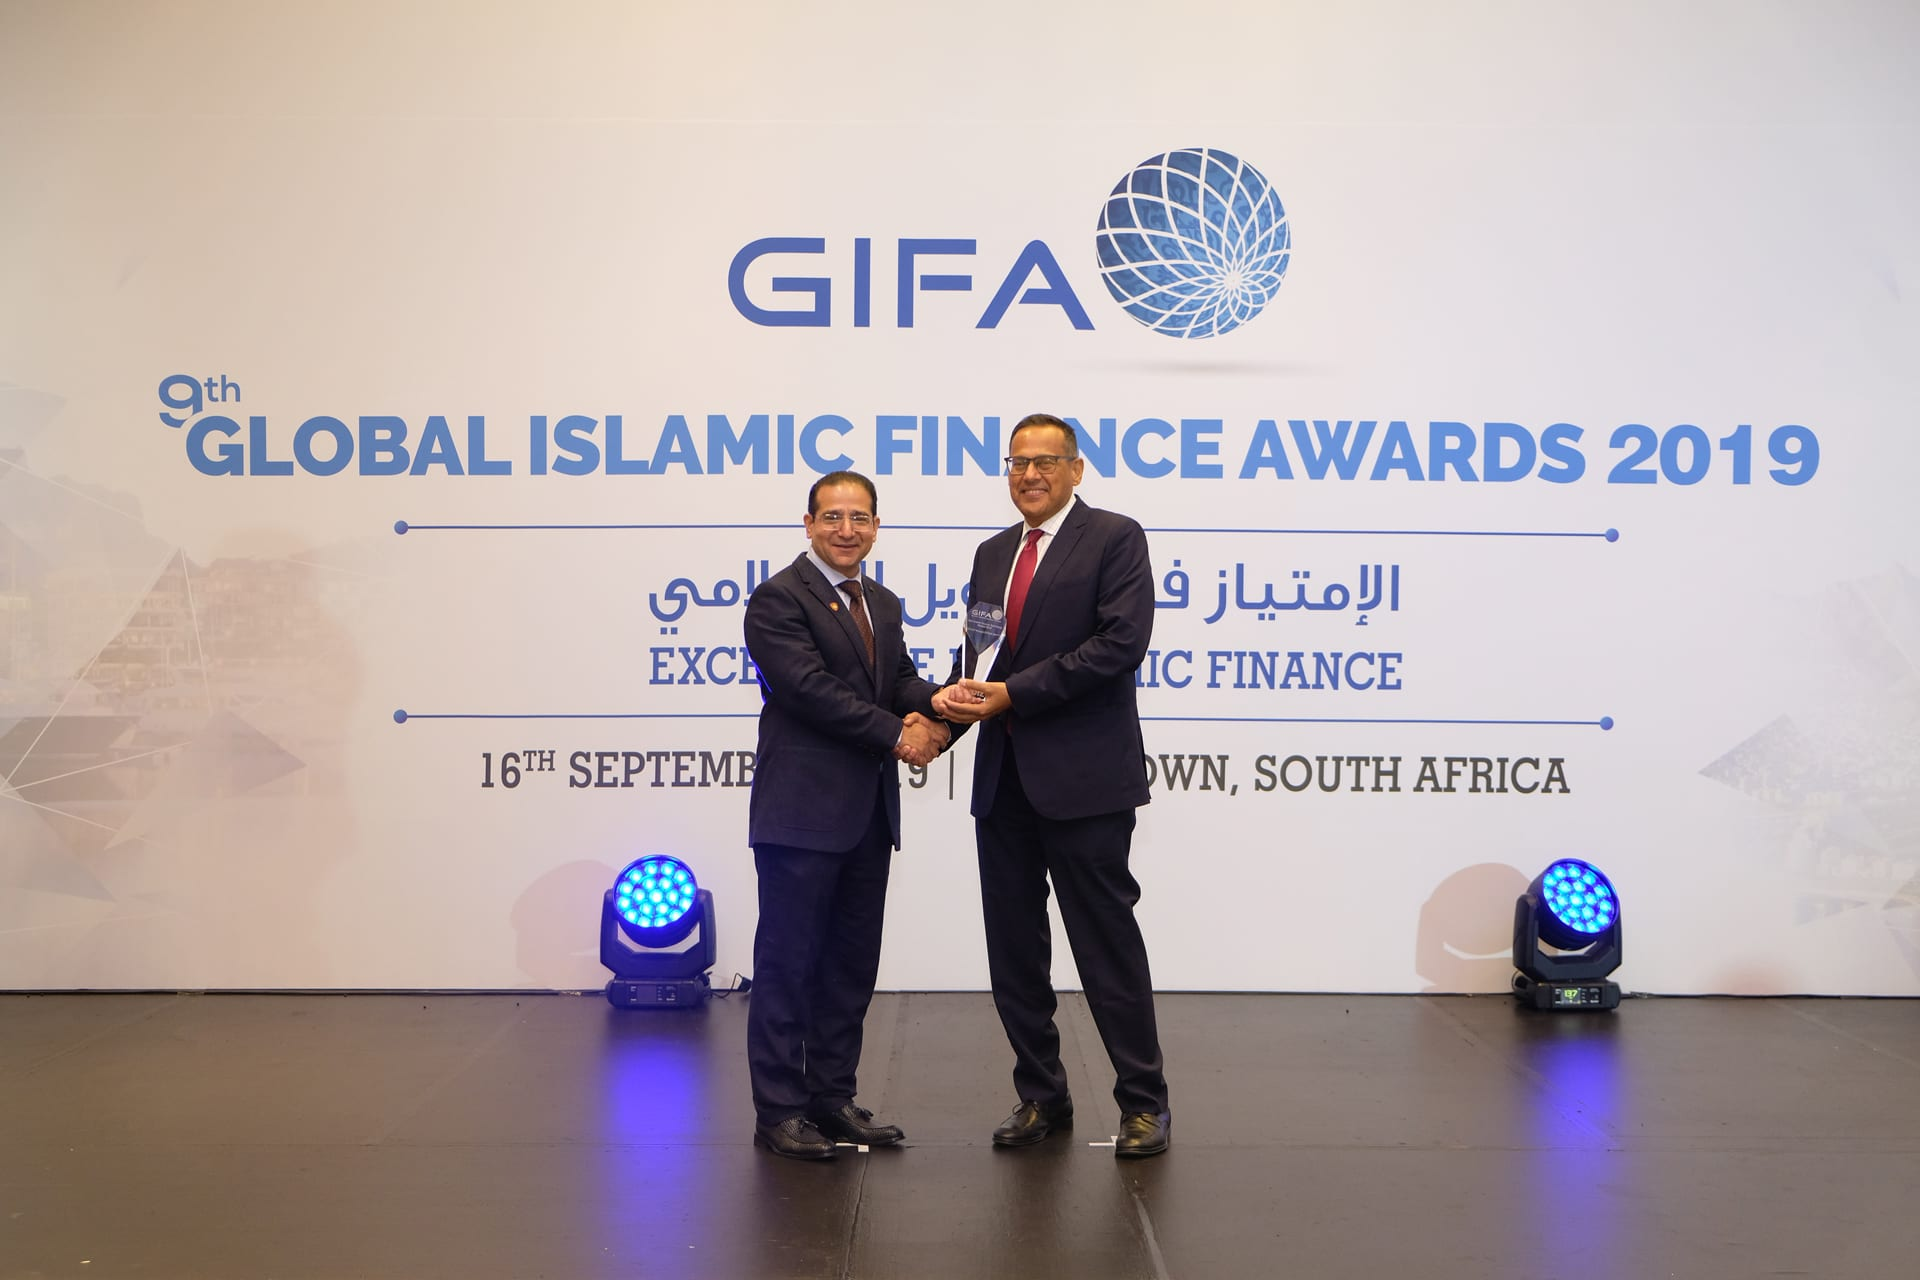 DDCAP Group™ is awarded the 2019 GIFA Market Leadership Award (Facilitation & Support) and Best Islamic Finance Technology Product 2019 for ETHOS AFPTM  at the Global Islamic Finance Awards 2019